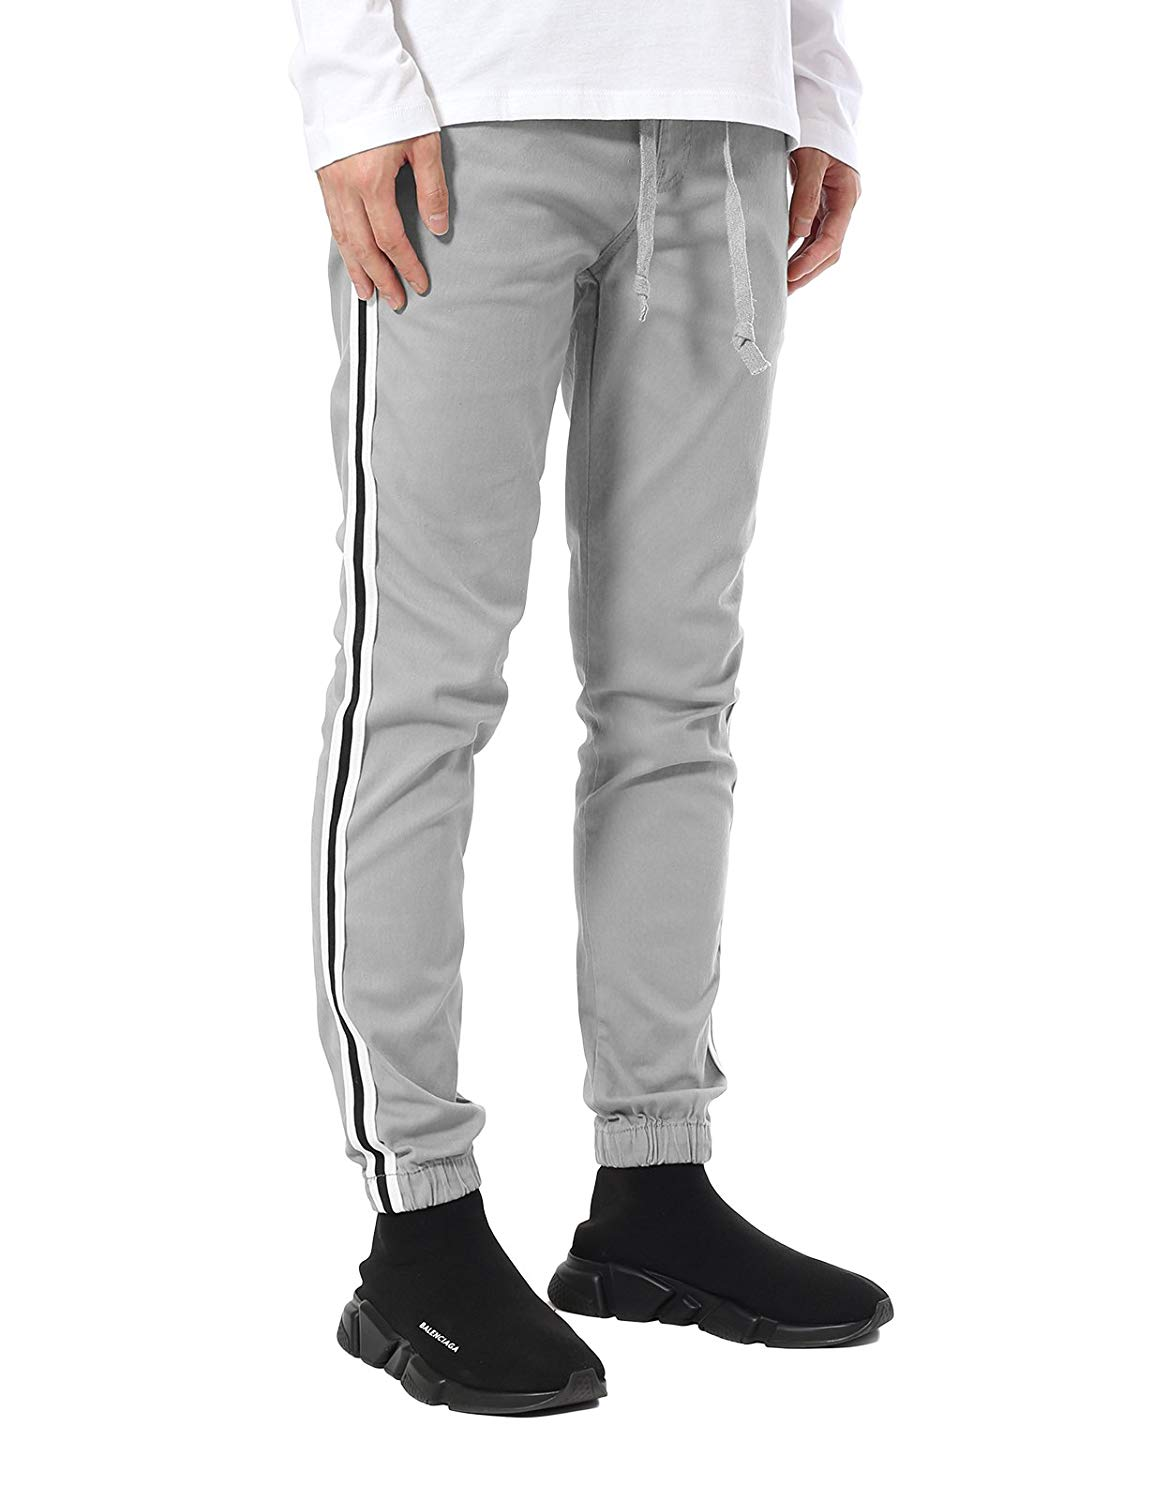 25b830afaa5a Get Quotations · JD Apparel Men s Stripe Track Pants Skinny Fit Stretch  Casual Elastic Athletic Slim Joggers